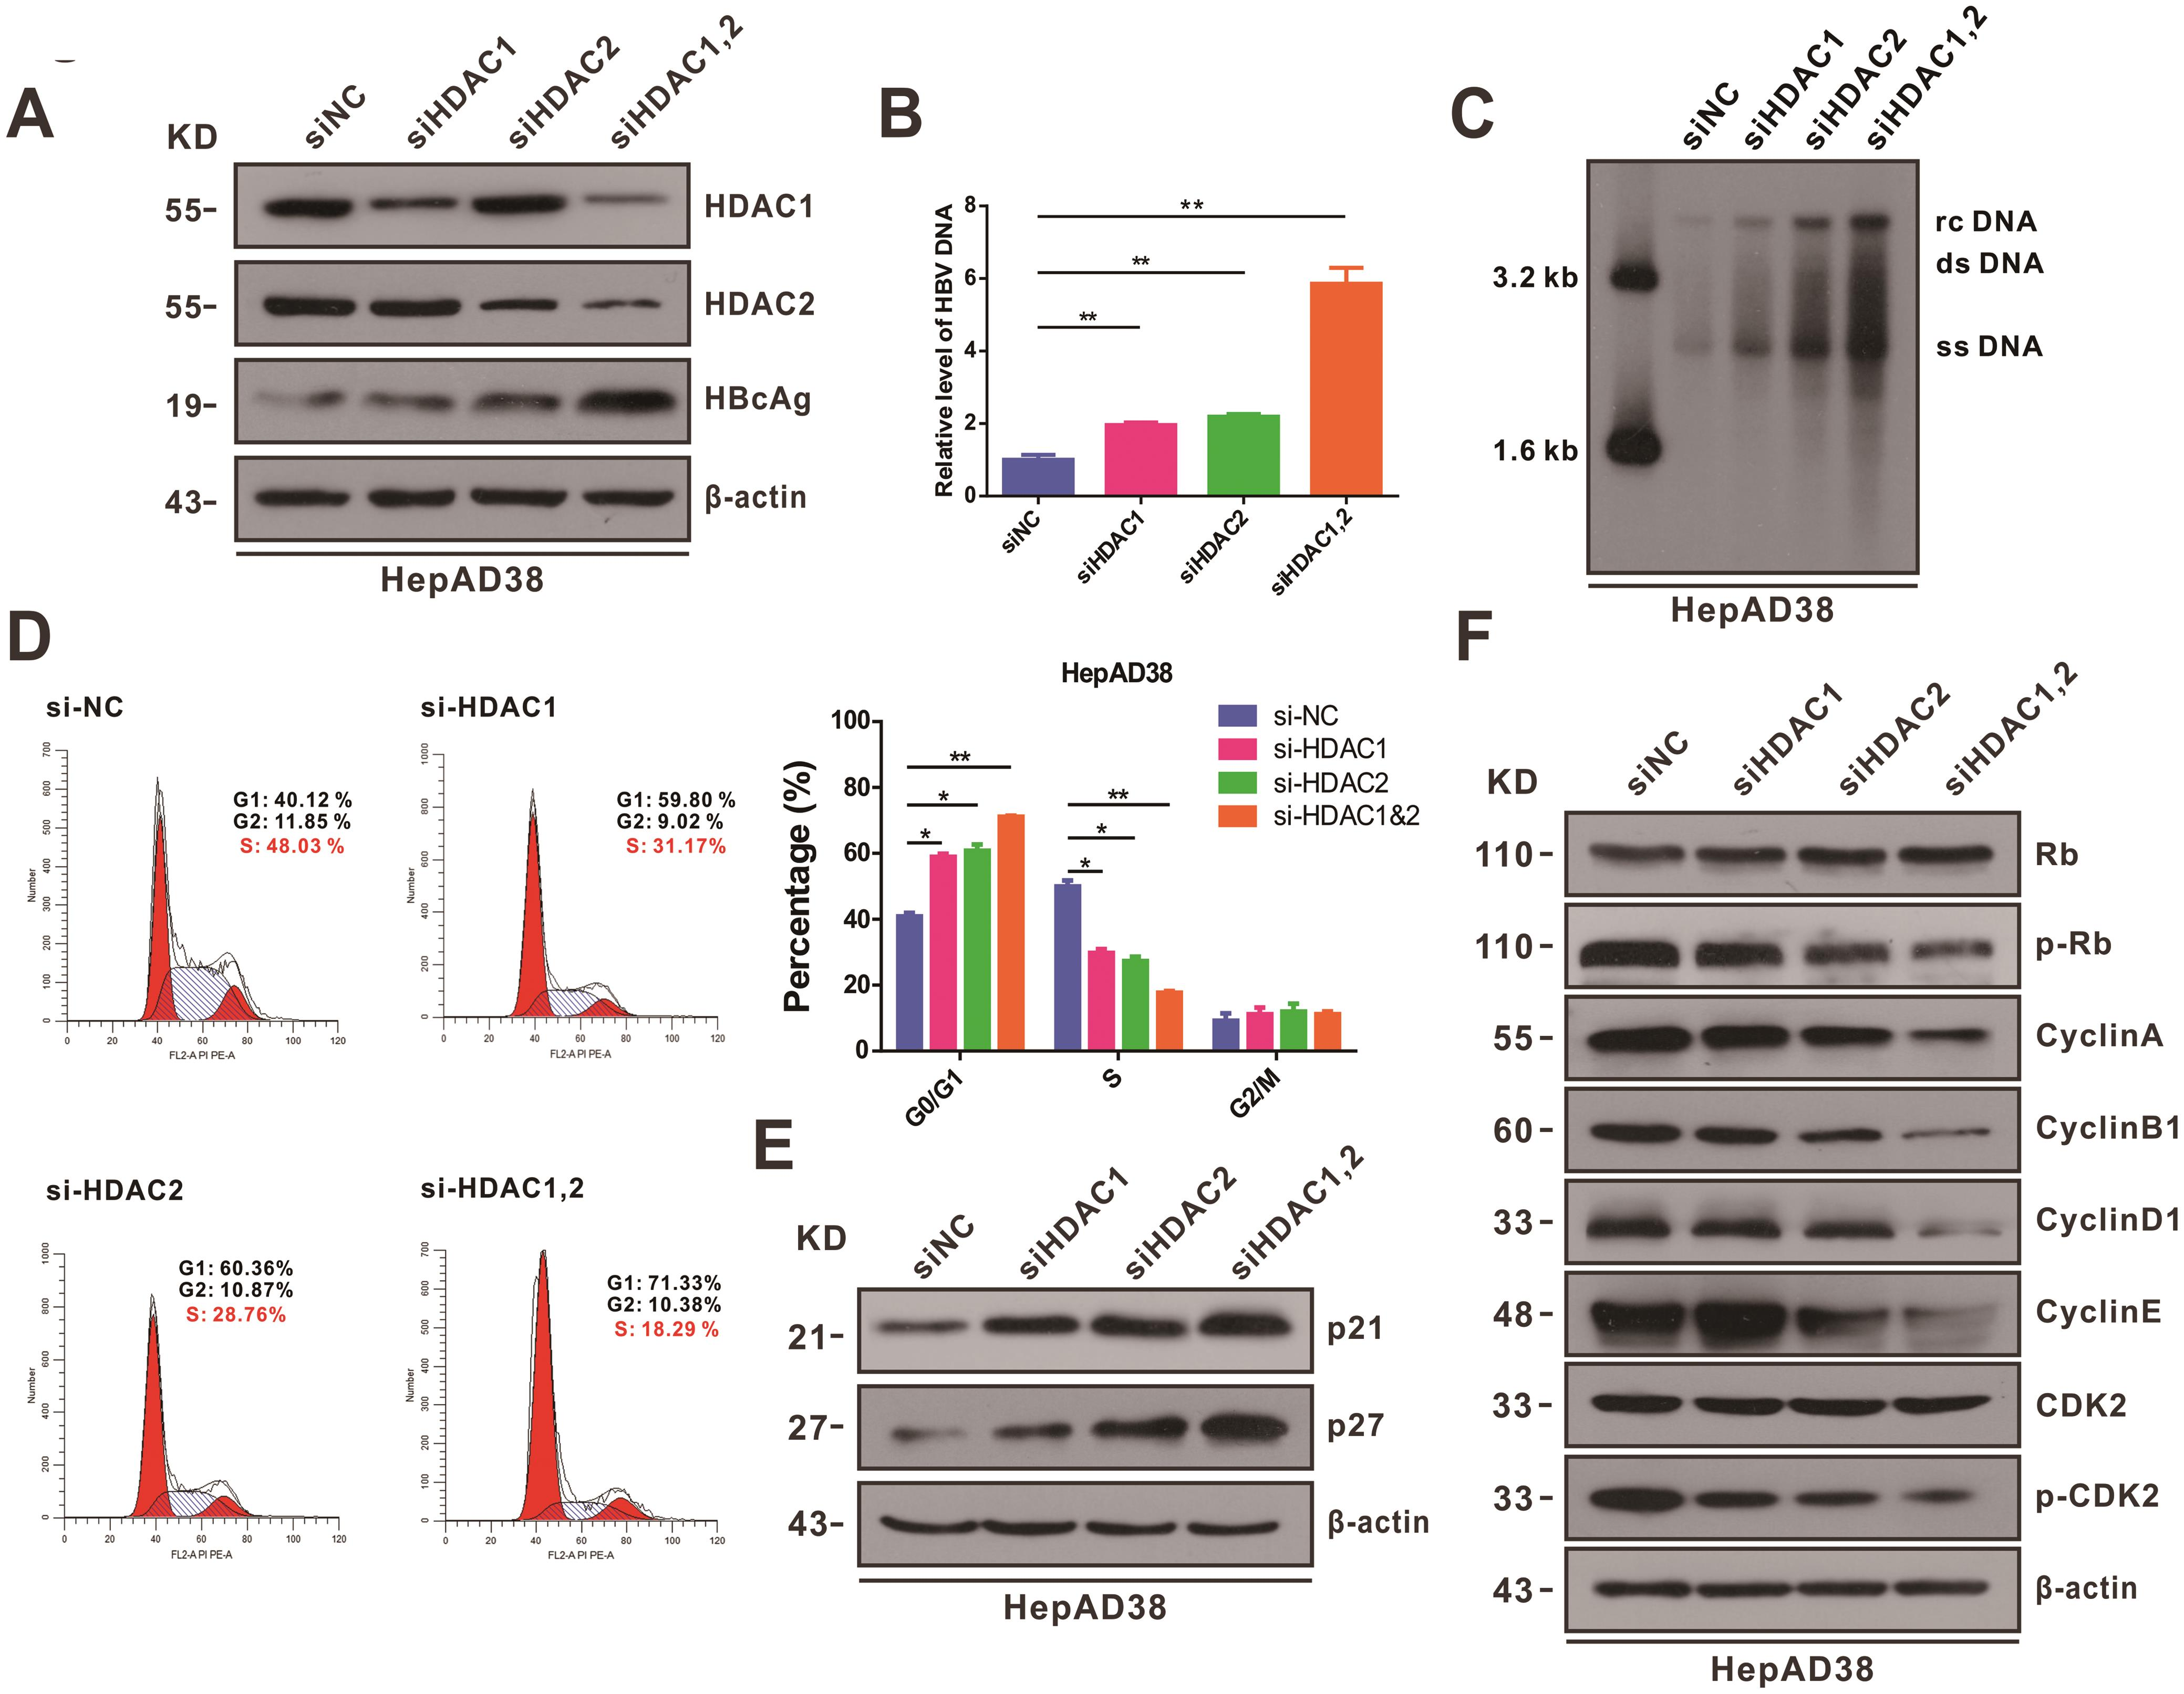 Transcriptional HDAC1/2 inhibition leads to cell cycle blockage in HBV-expressing hepatoma cells.